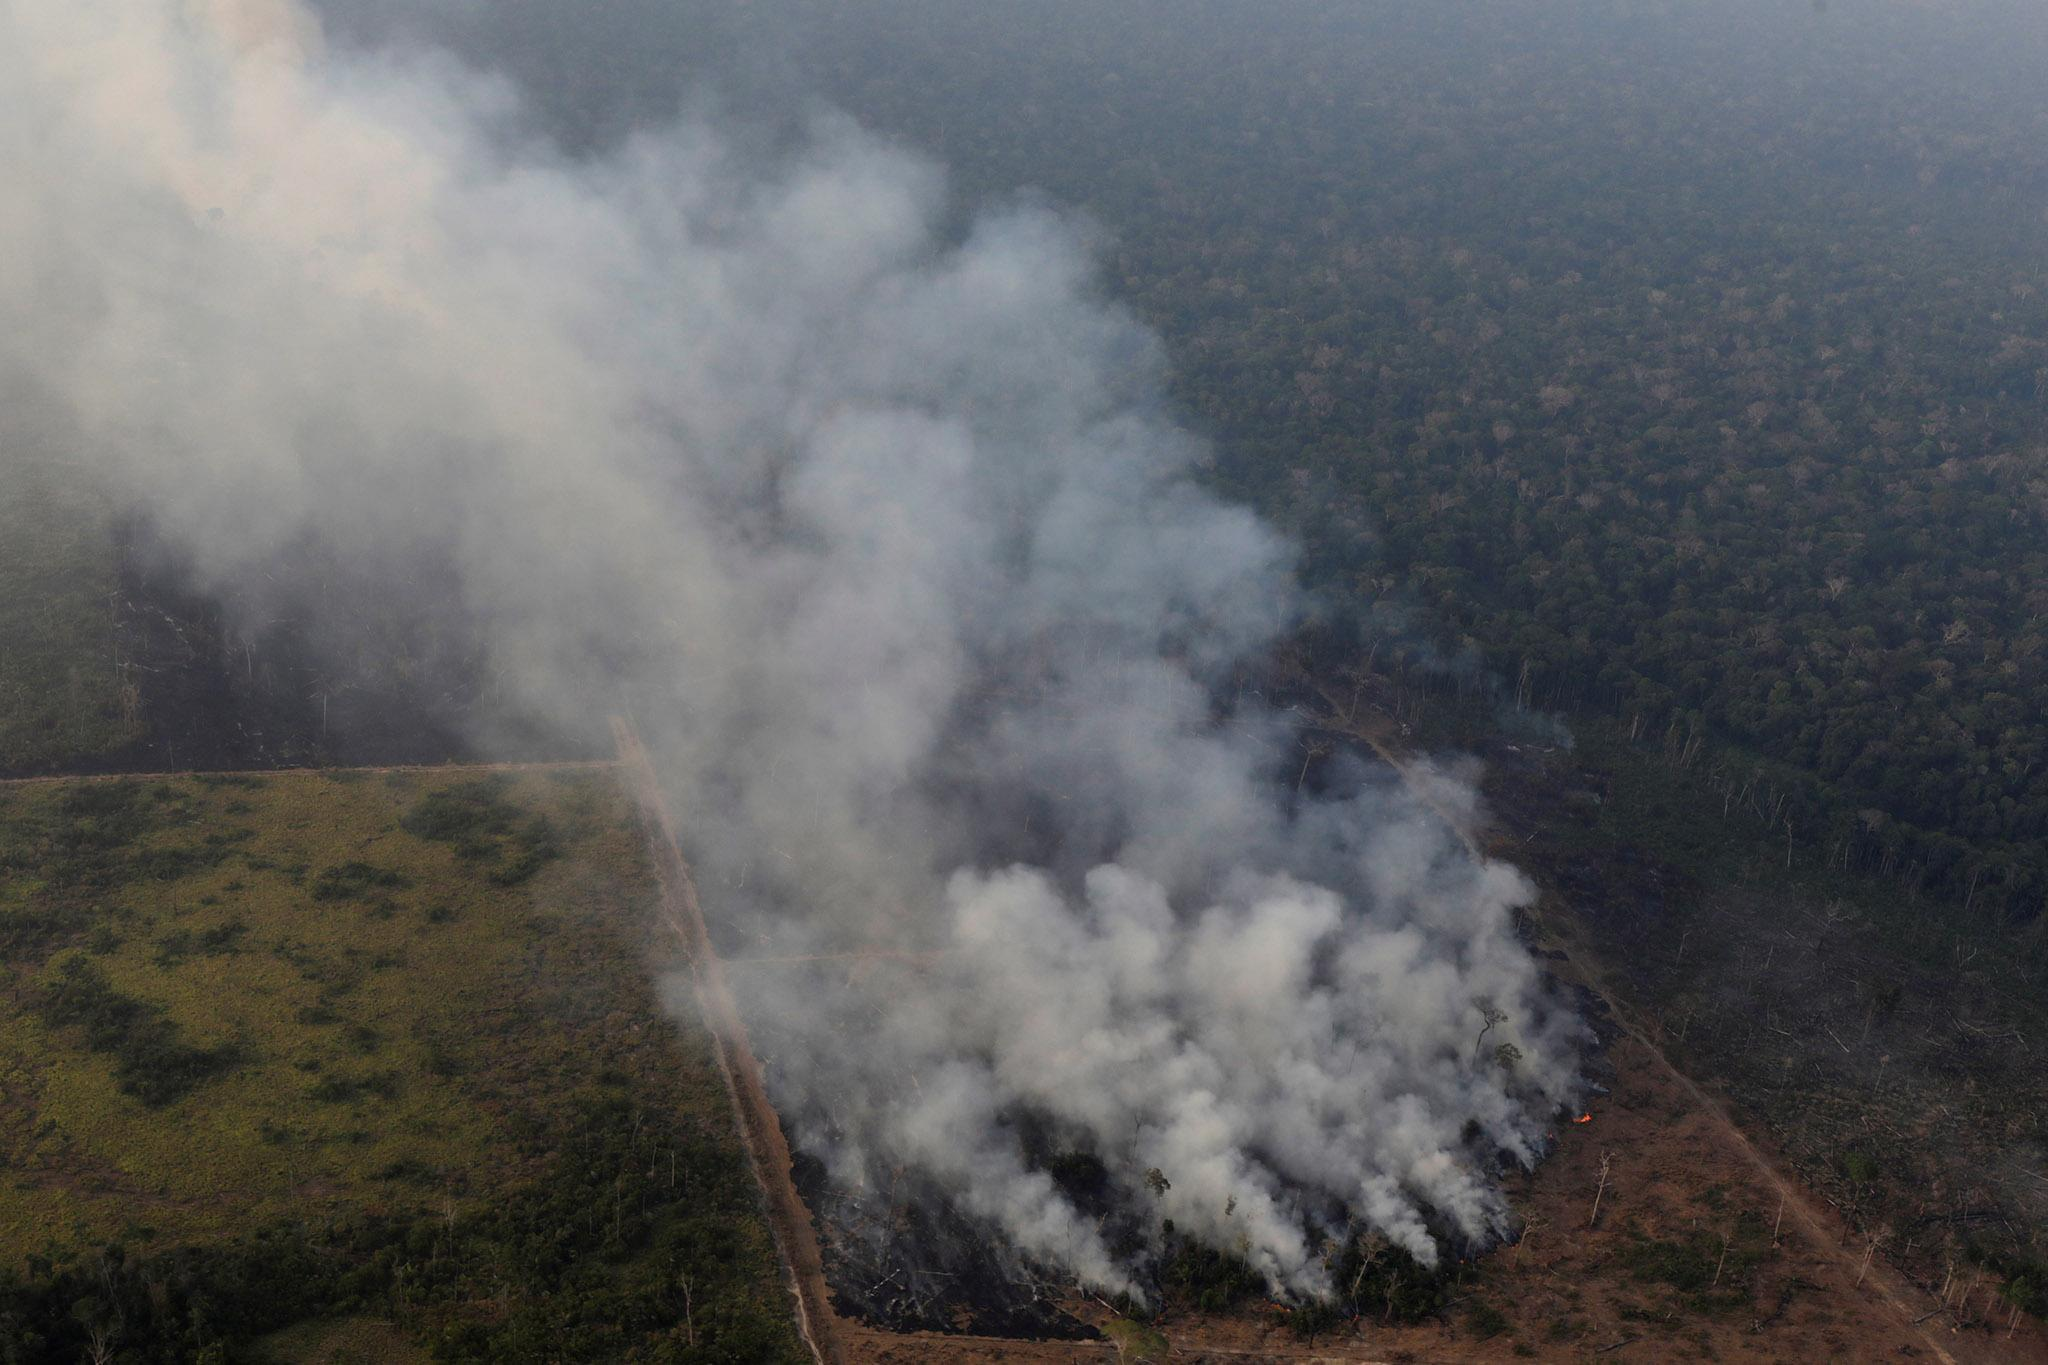 Amazon rainforest fires and deforestation approaching disastrous irreversible tipping point, scientists warn